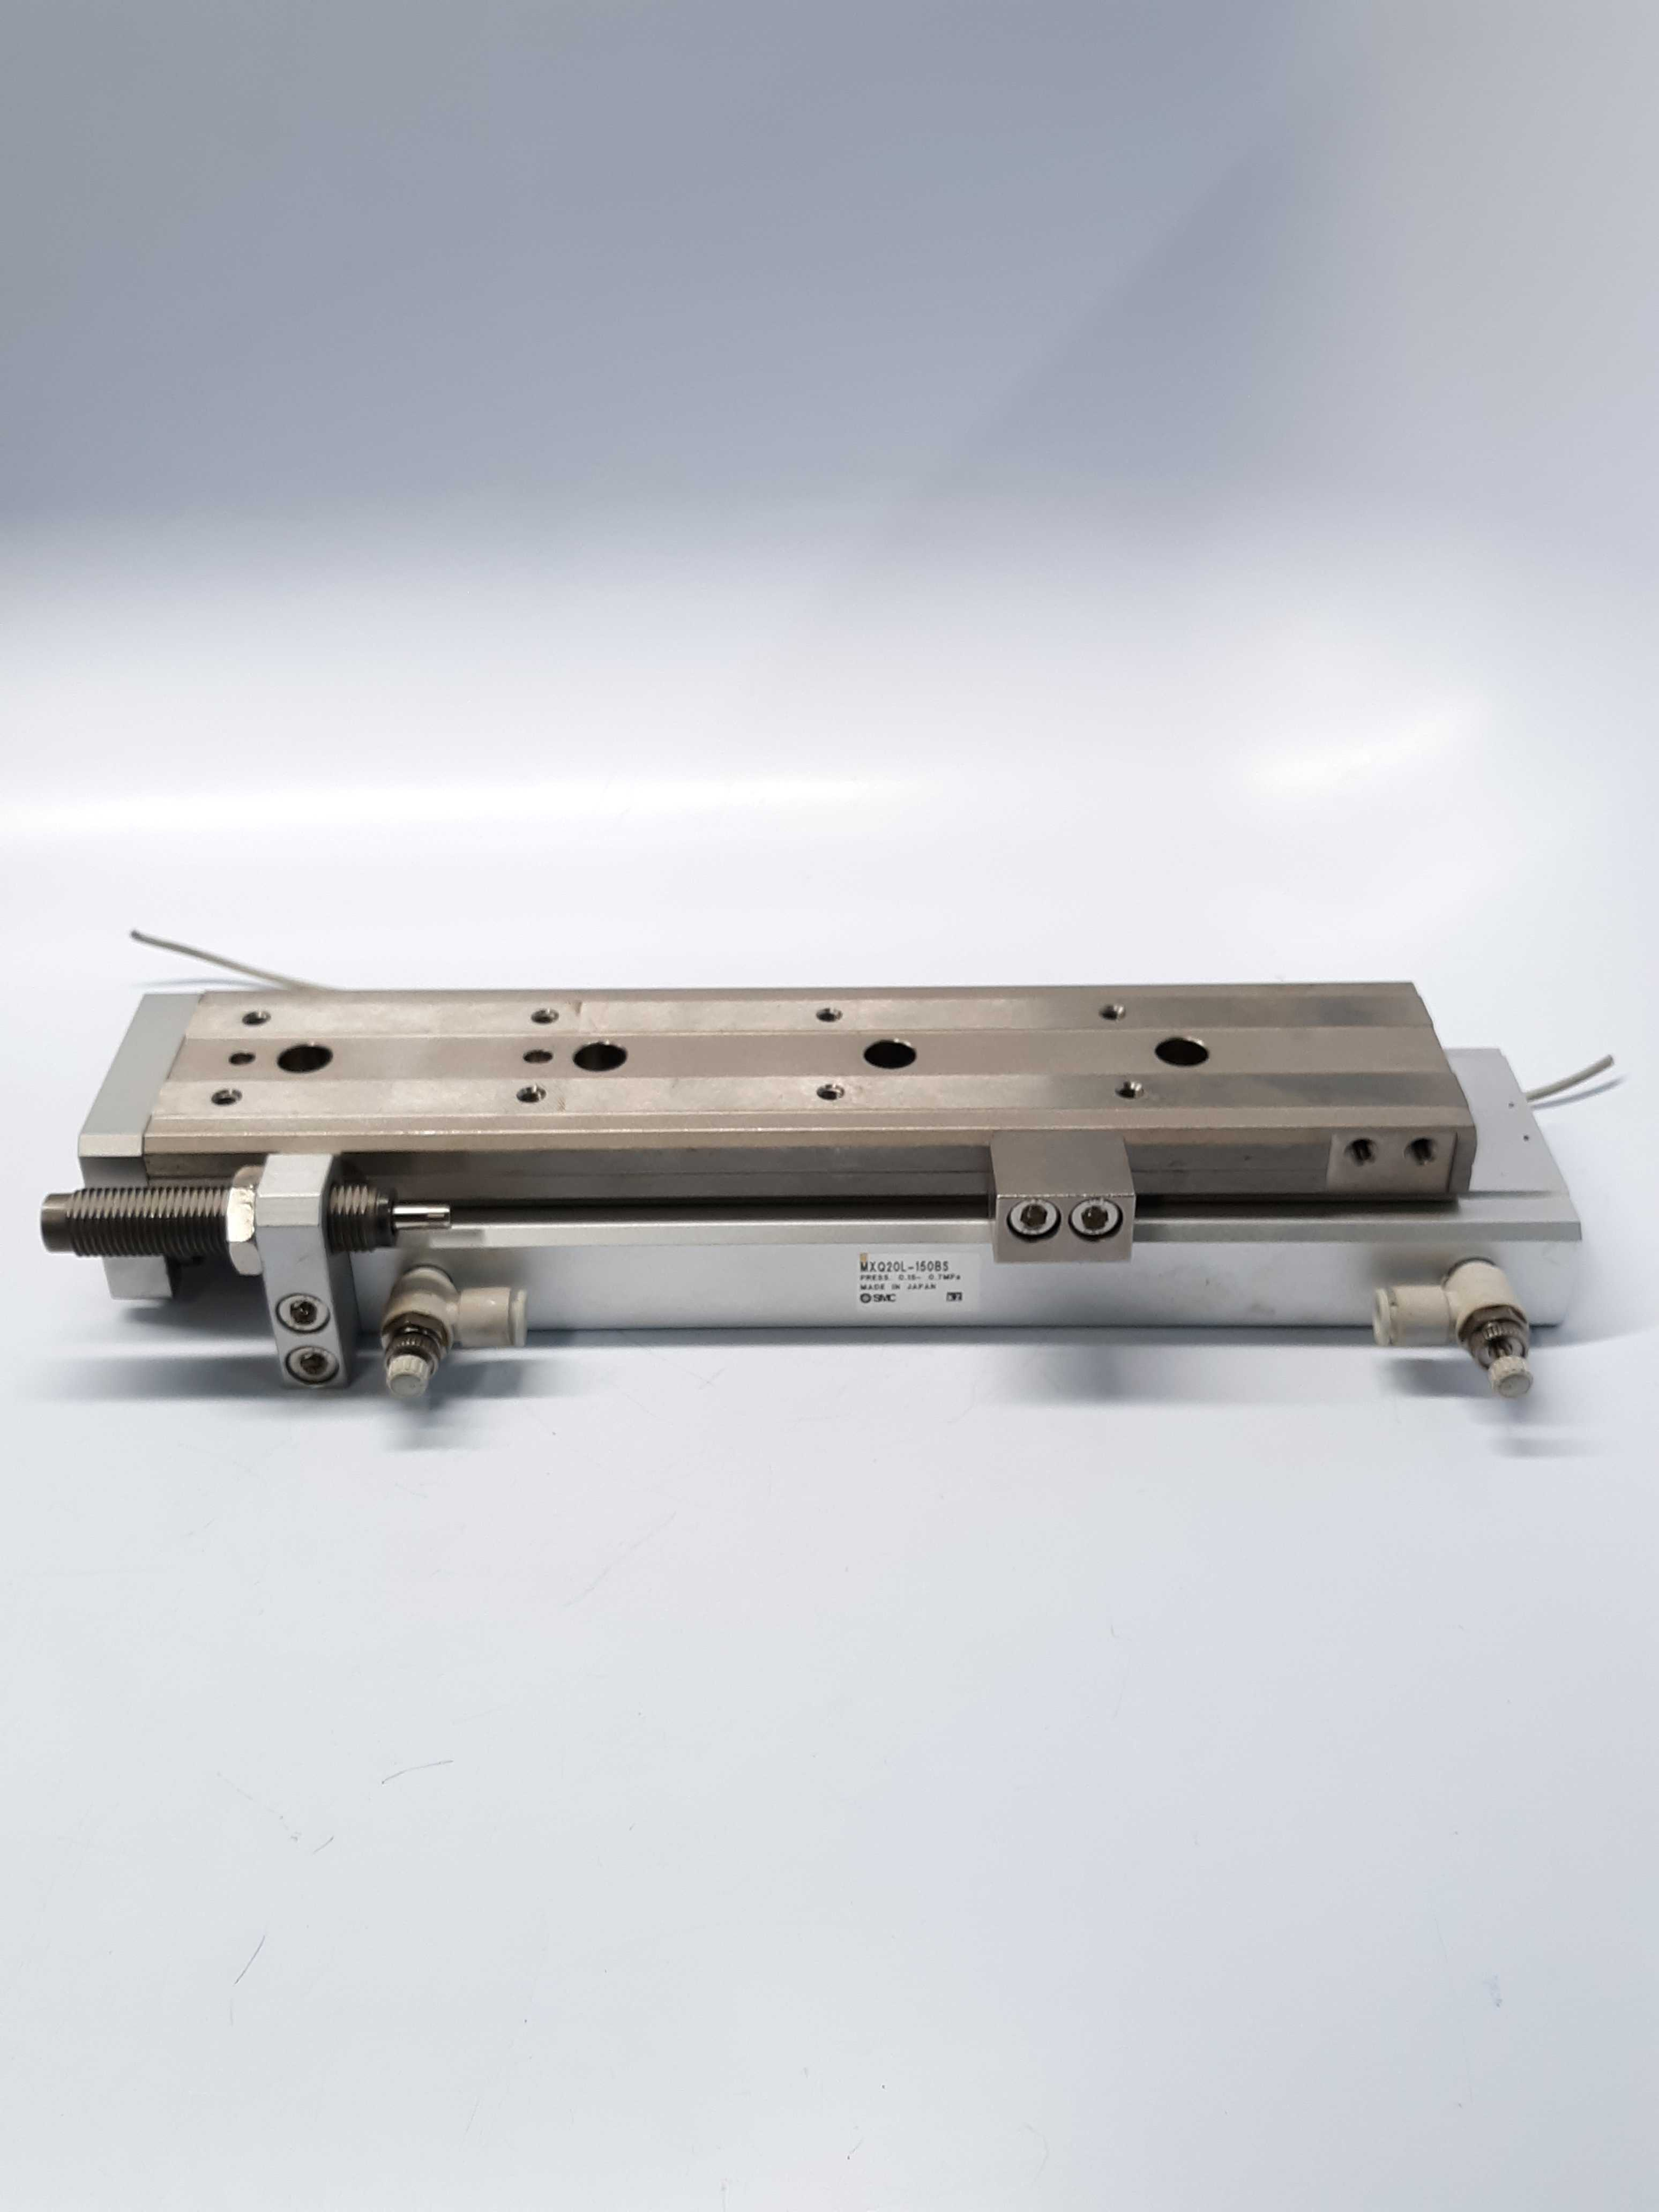 SMC MXQ20L-150BS Linear Motion Air Cylinder with Regulator and Position Sensor